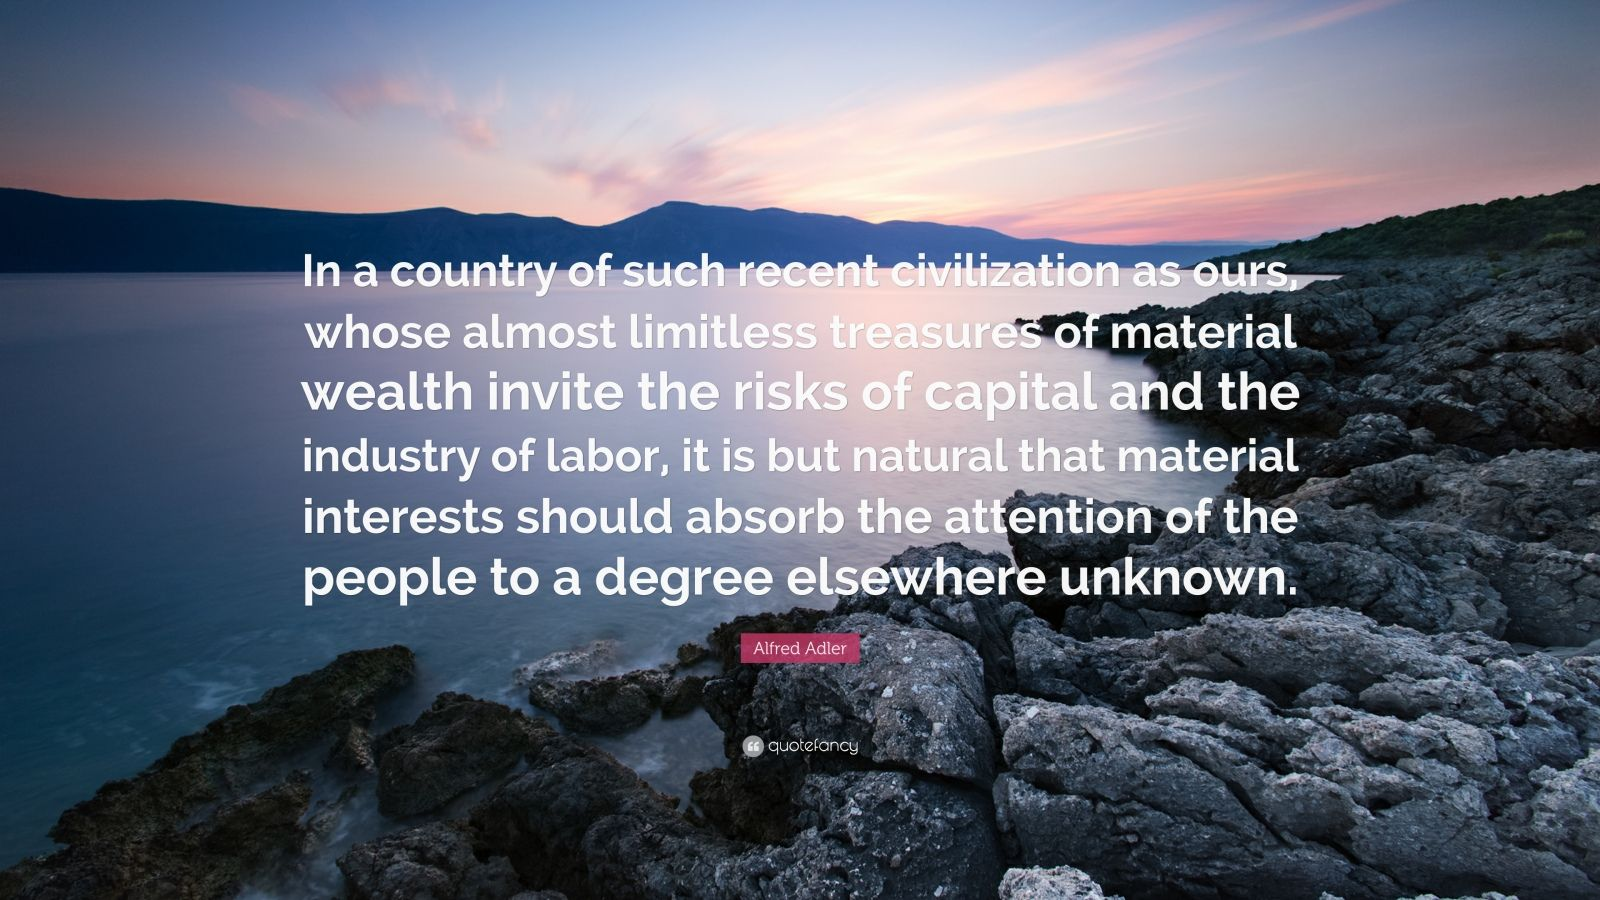 "Alfred Adler Quote: ""In a country of such recent civilization as ours, whose almost limitless treasures of material wealth invite the risks of capital and the industry of labor, it is but natural that material interests should absorb the attention of the people to a degree elsewhere unknown."""